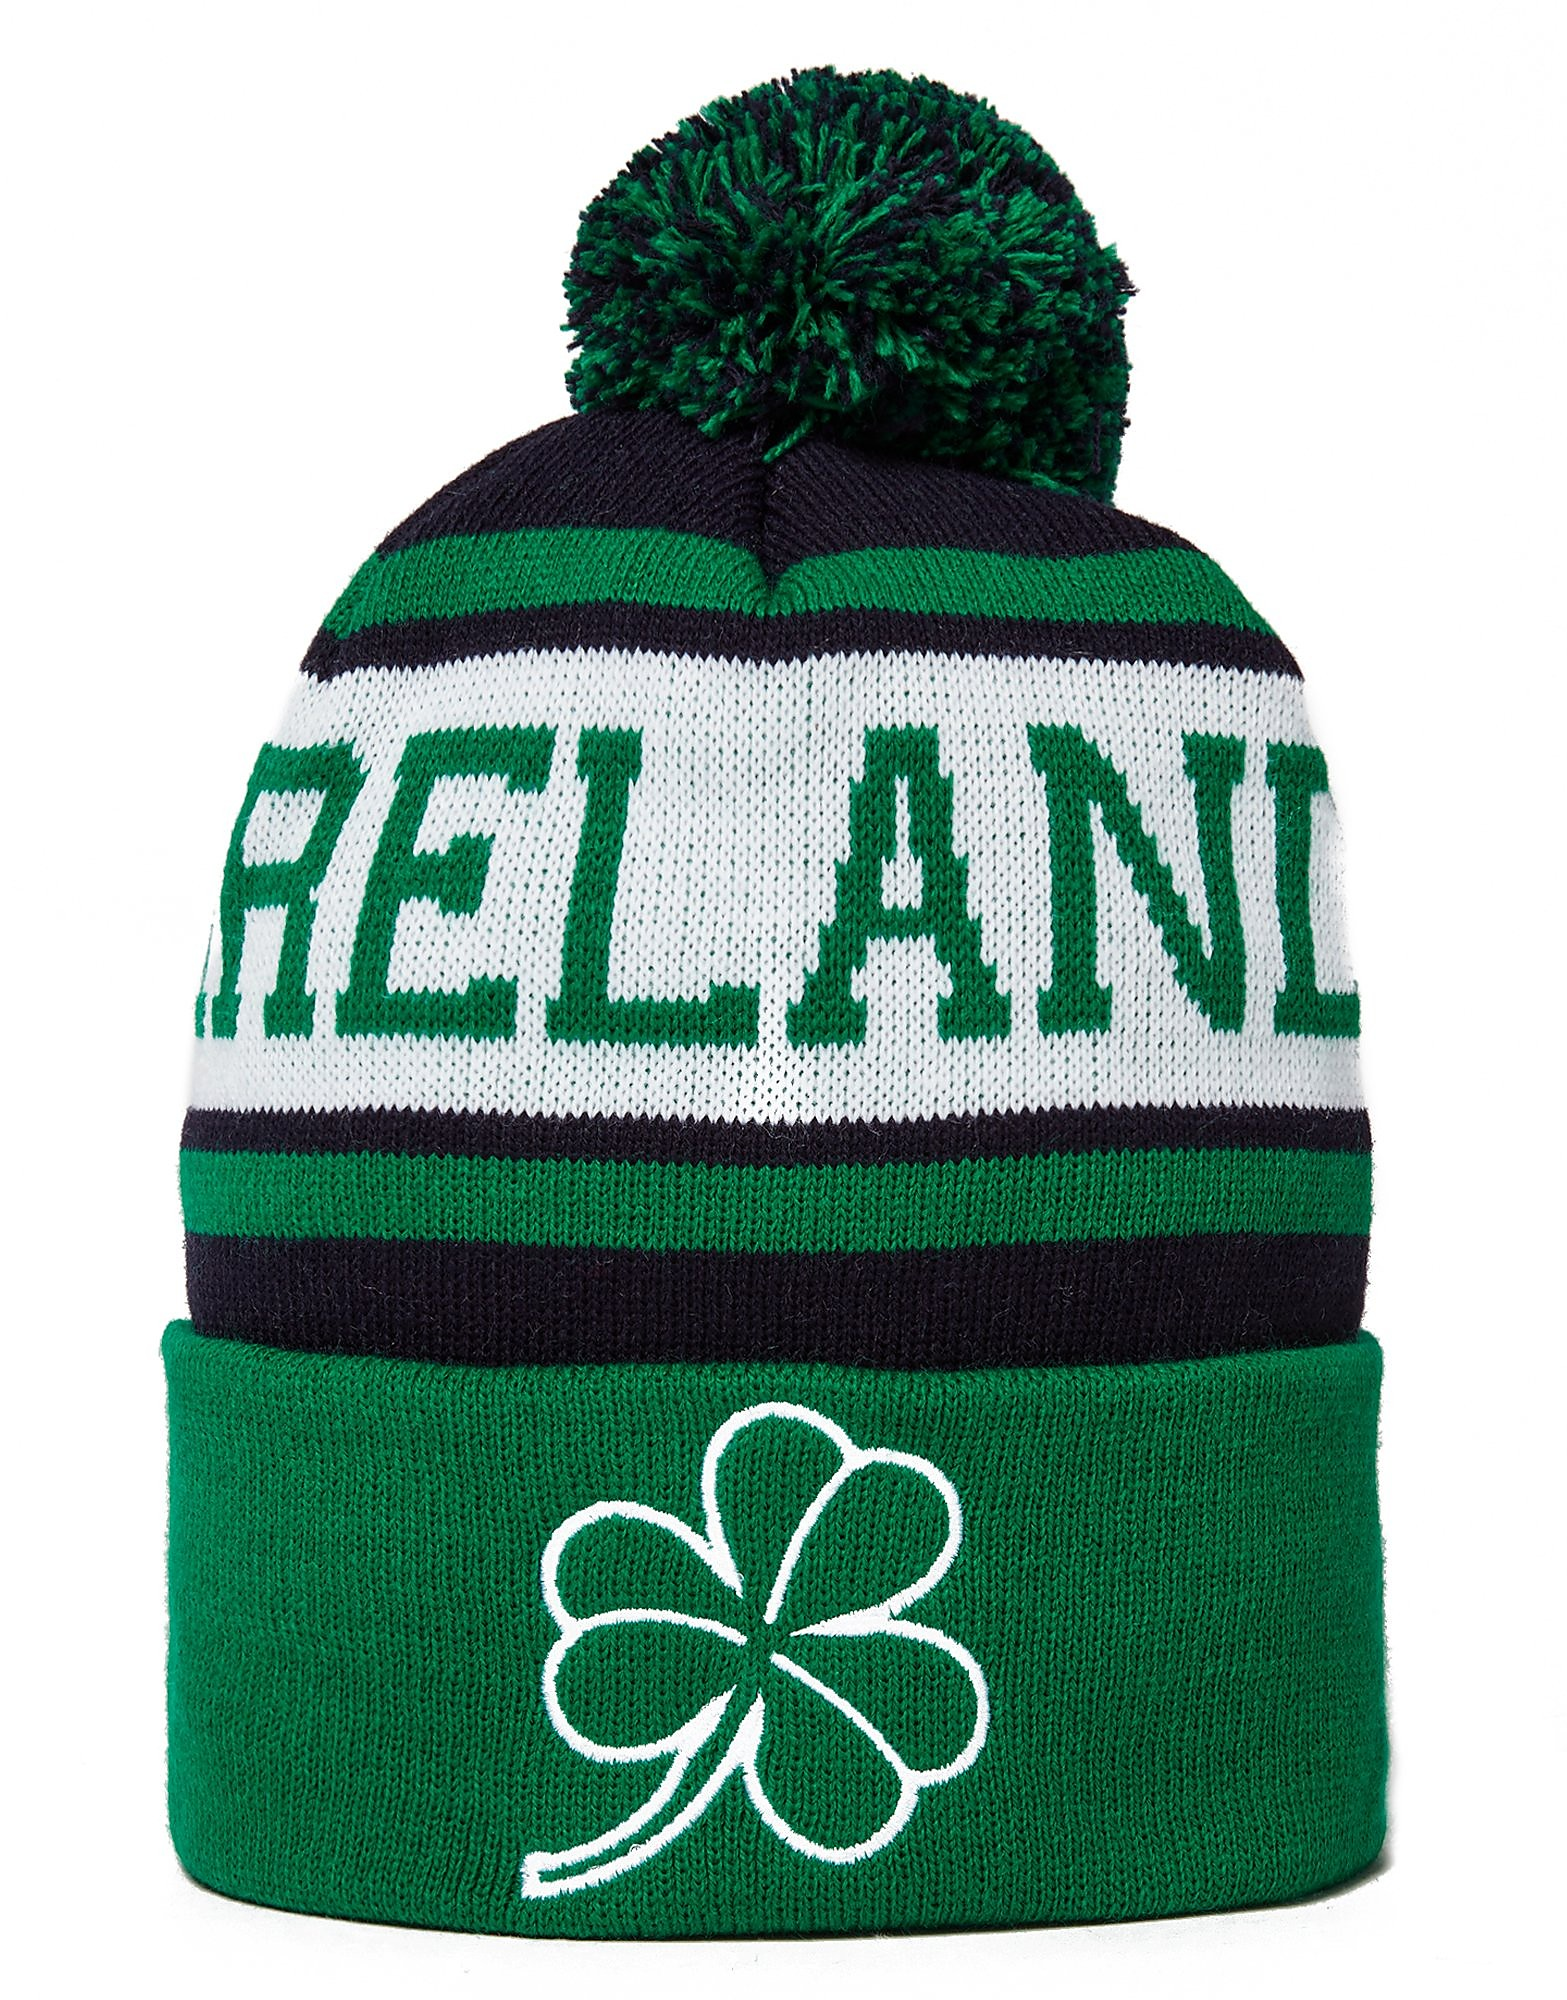 Official Team Ireland Beanie Hat